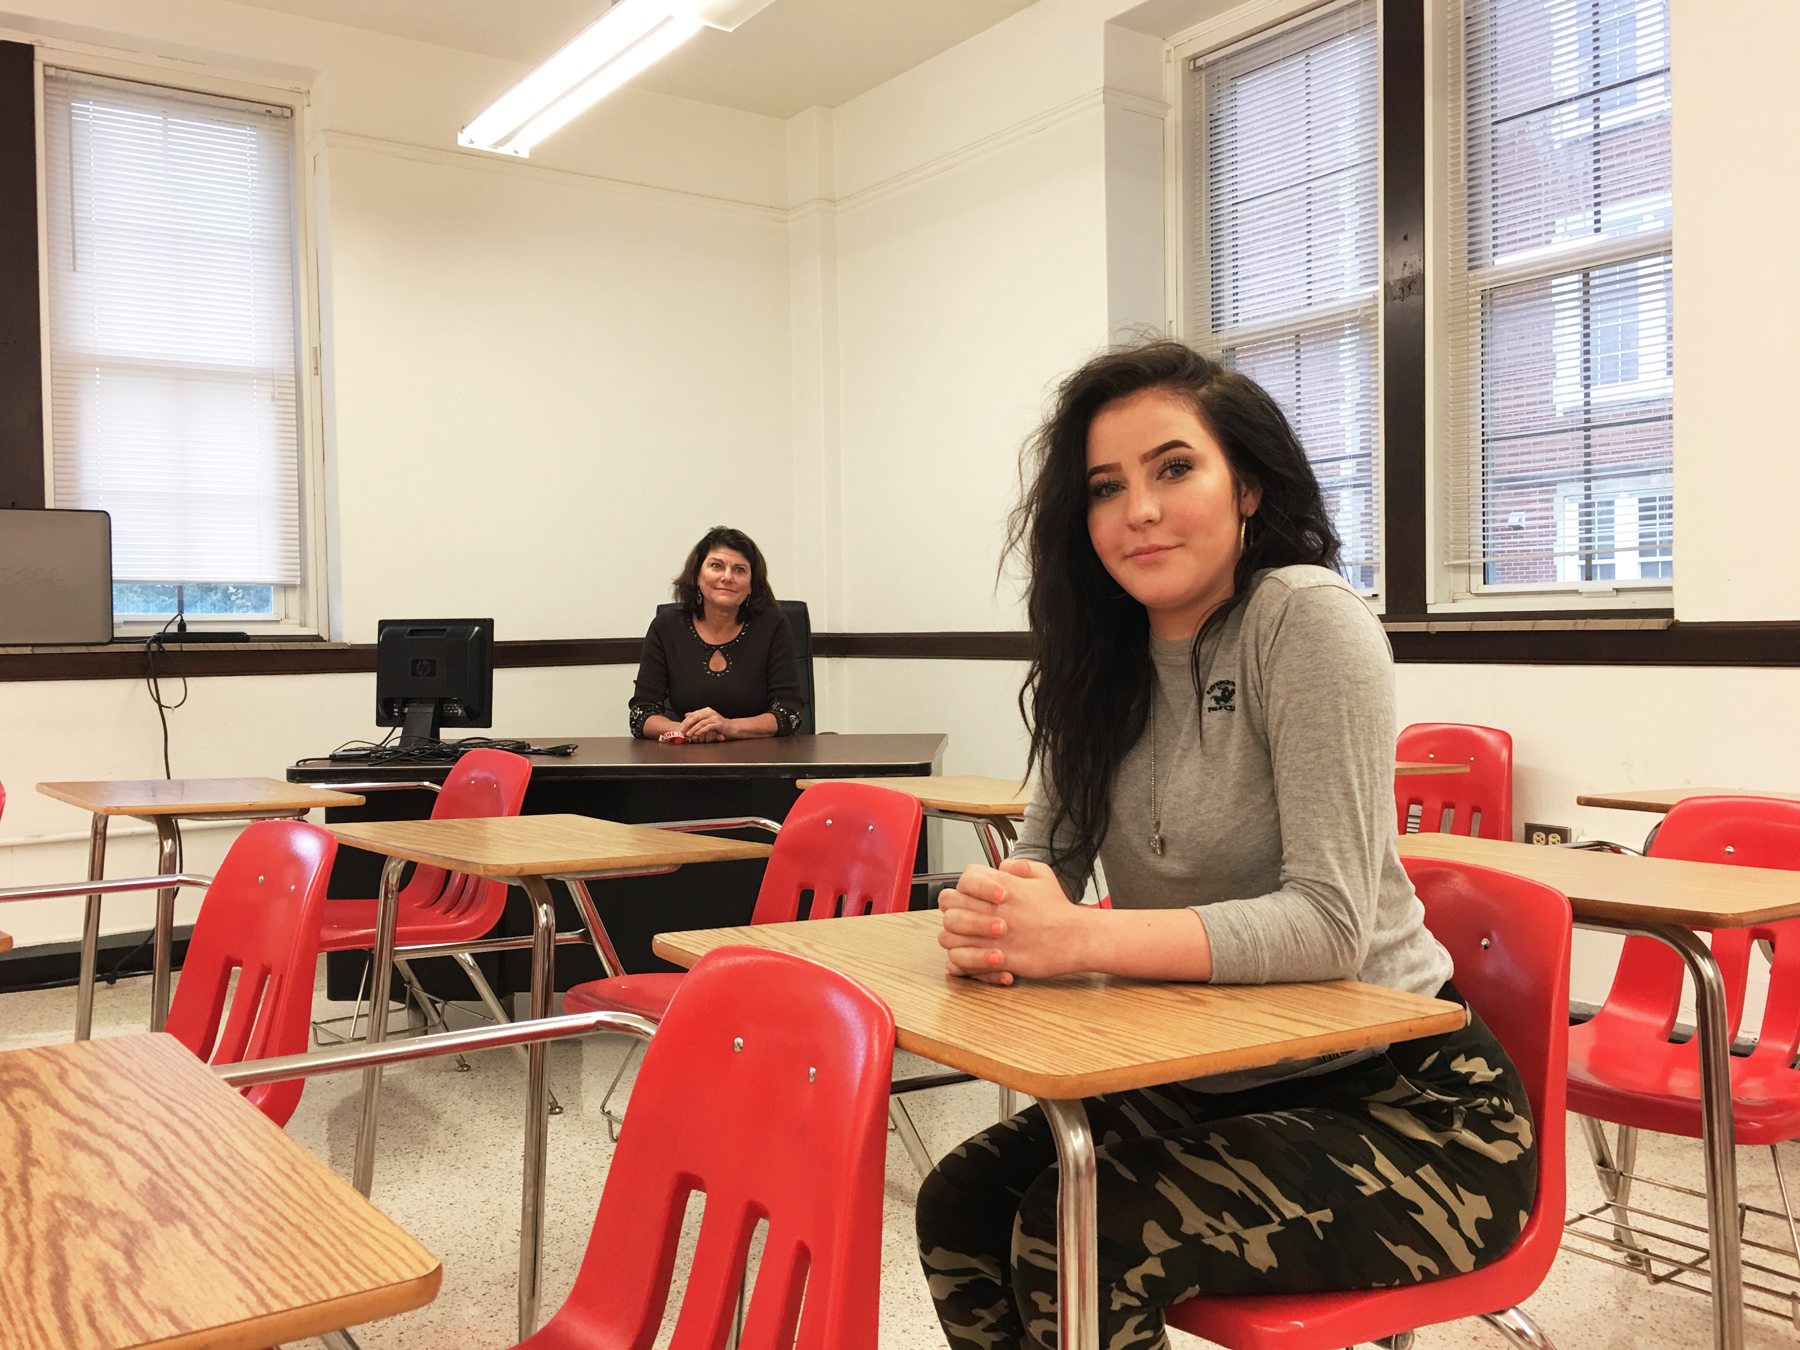 Parkersburg High School Student Says Options Pathway Is Best Hope For A Bright Future